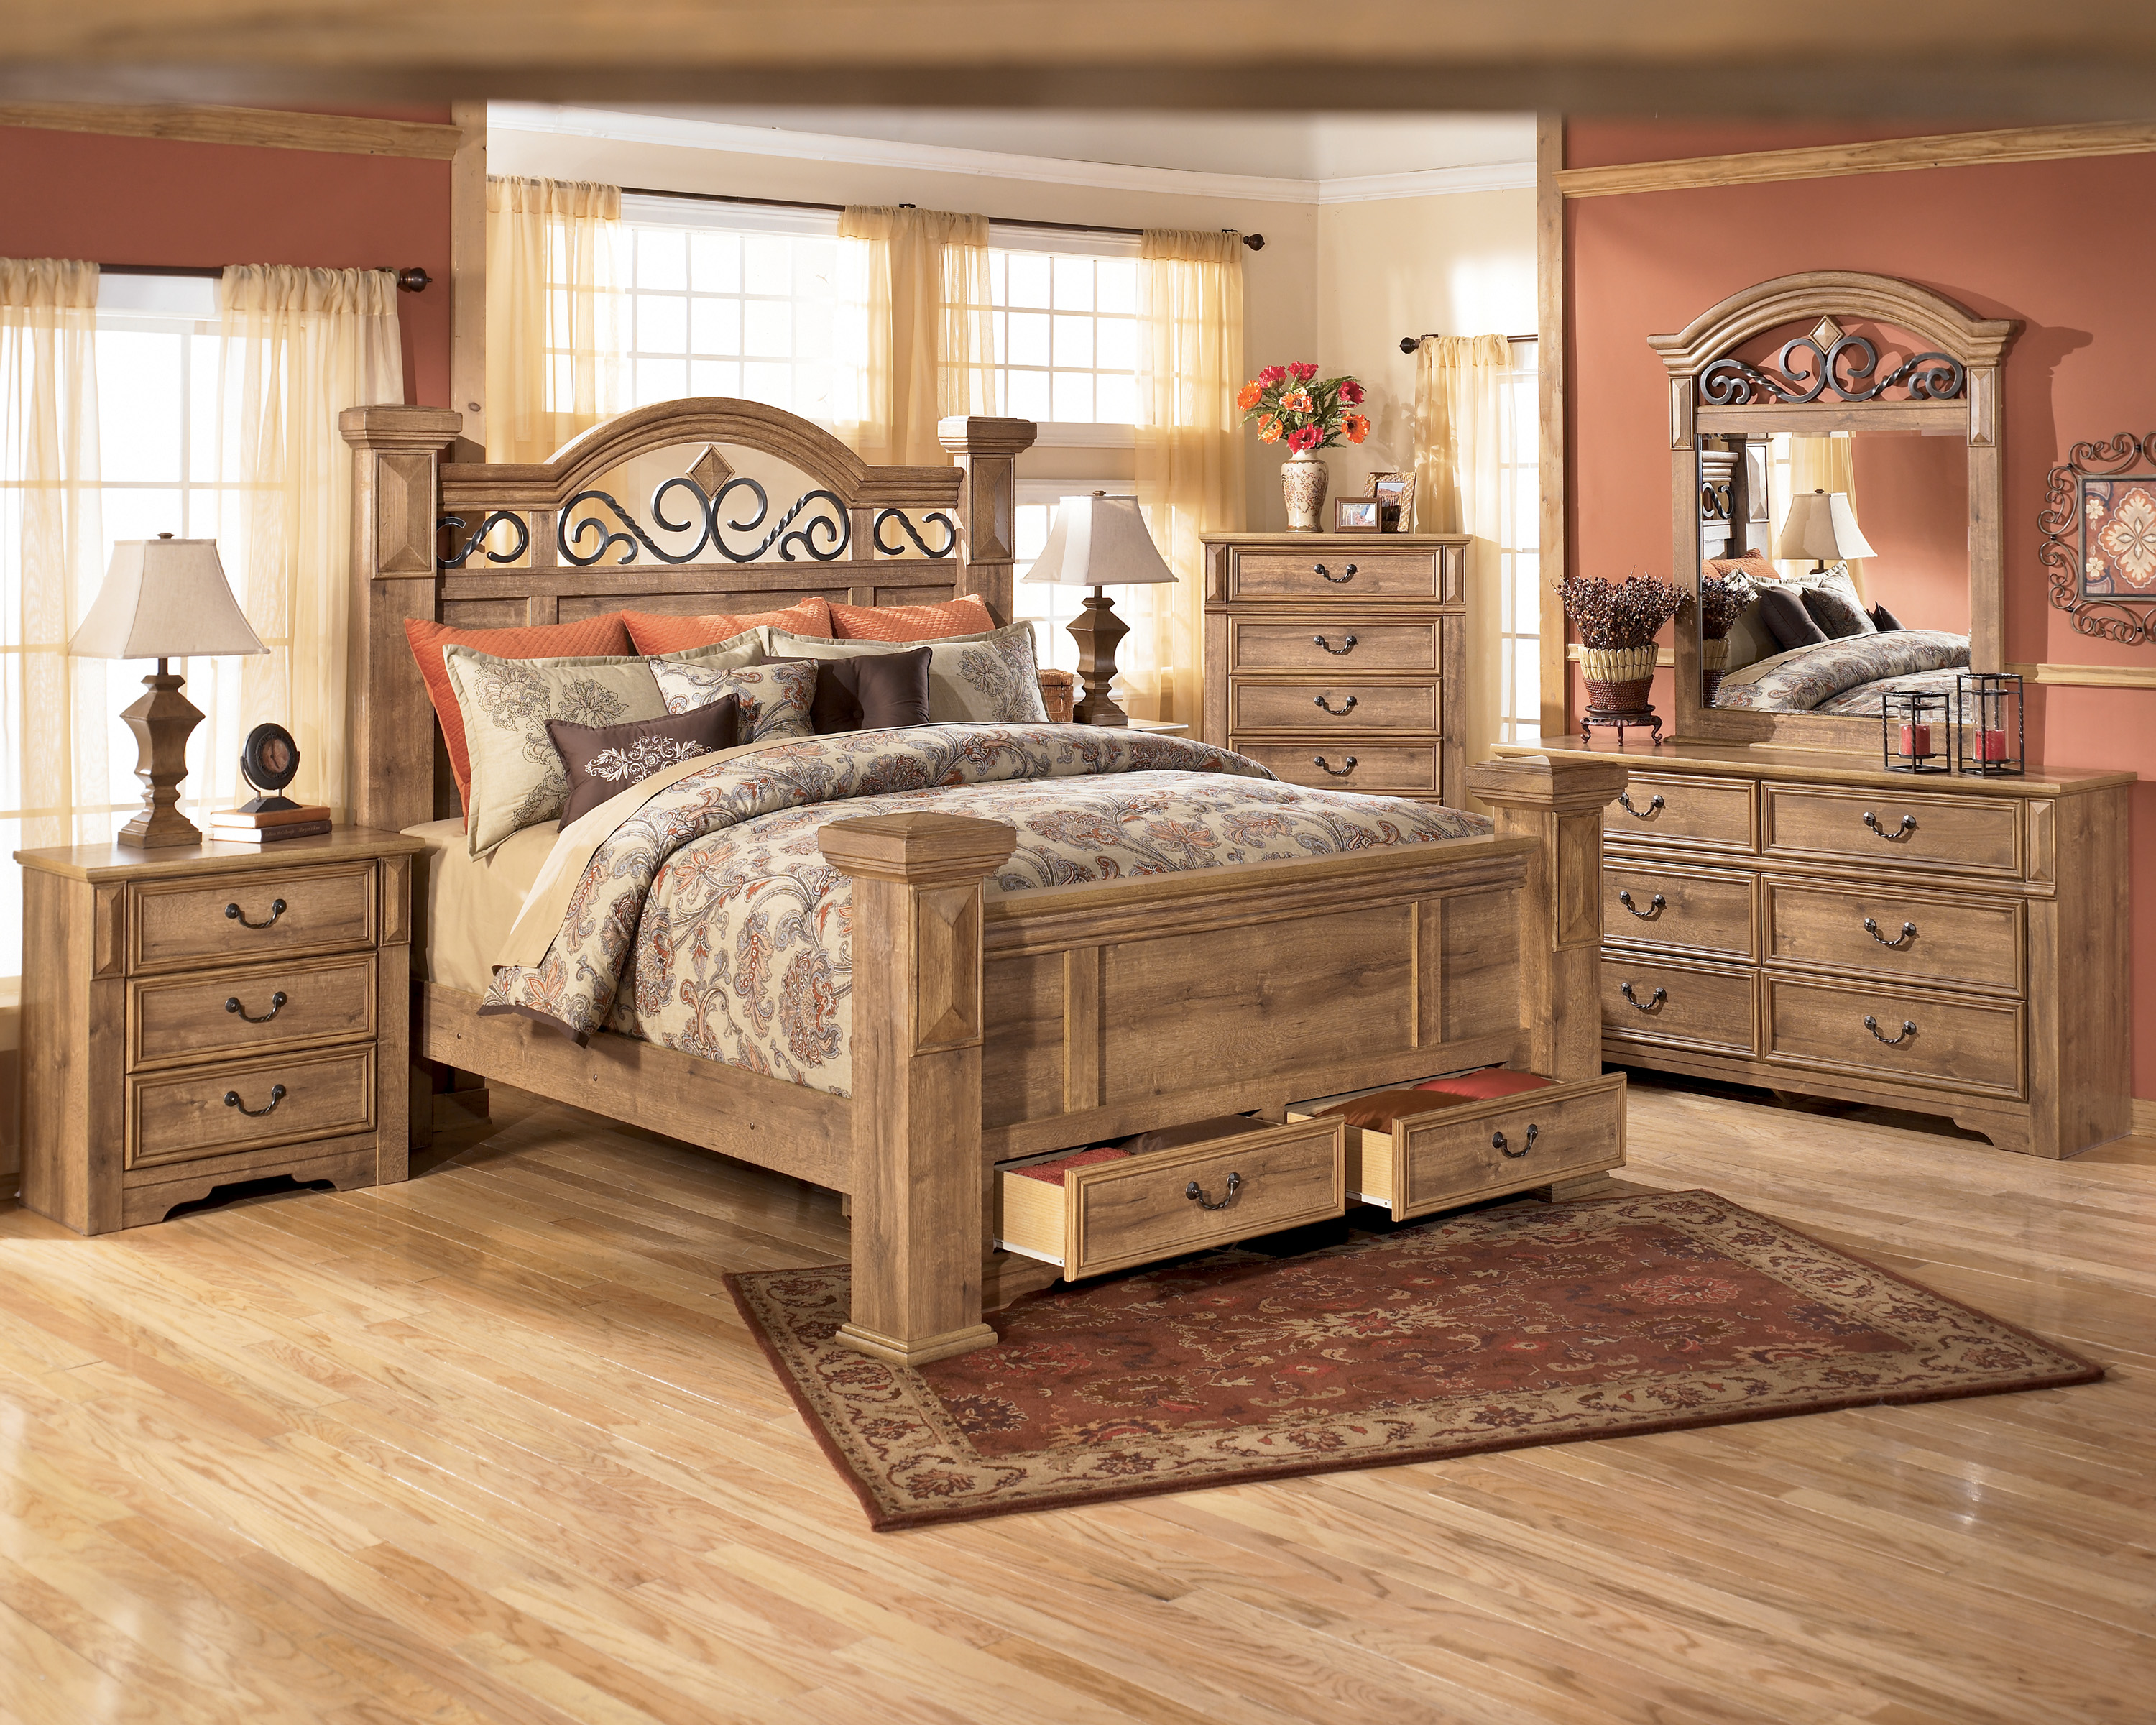 Photos of king bedroom furniture | Gloria King Size Complete Bedroom Set Rosalinda king size bedroom furniture sets